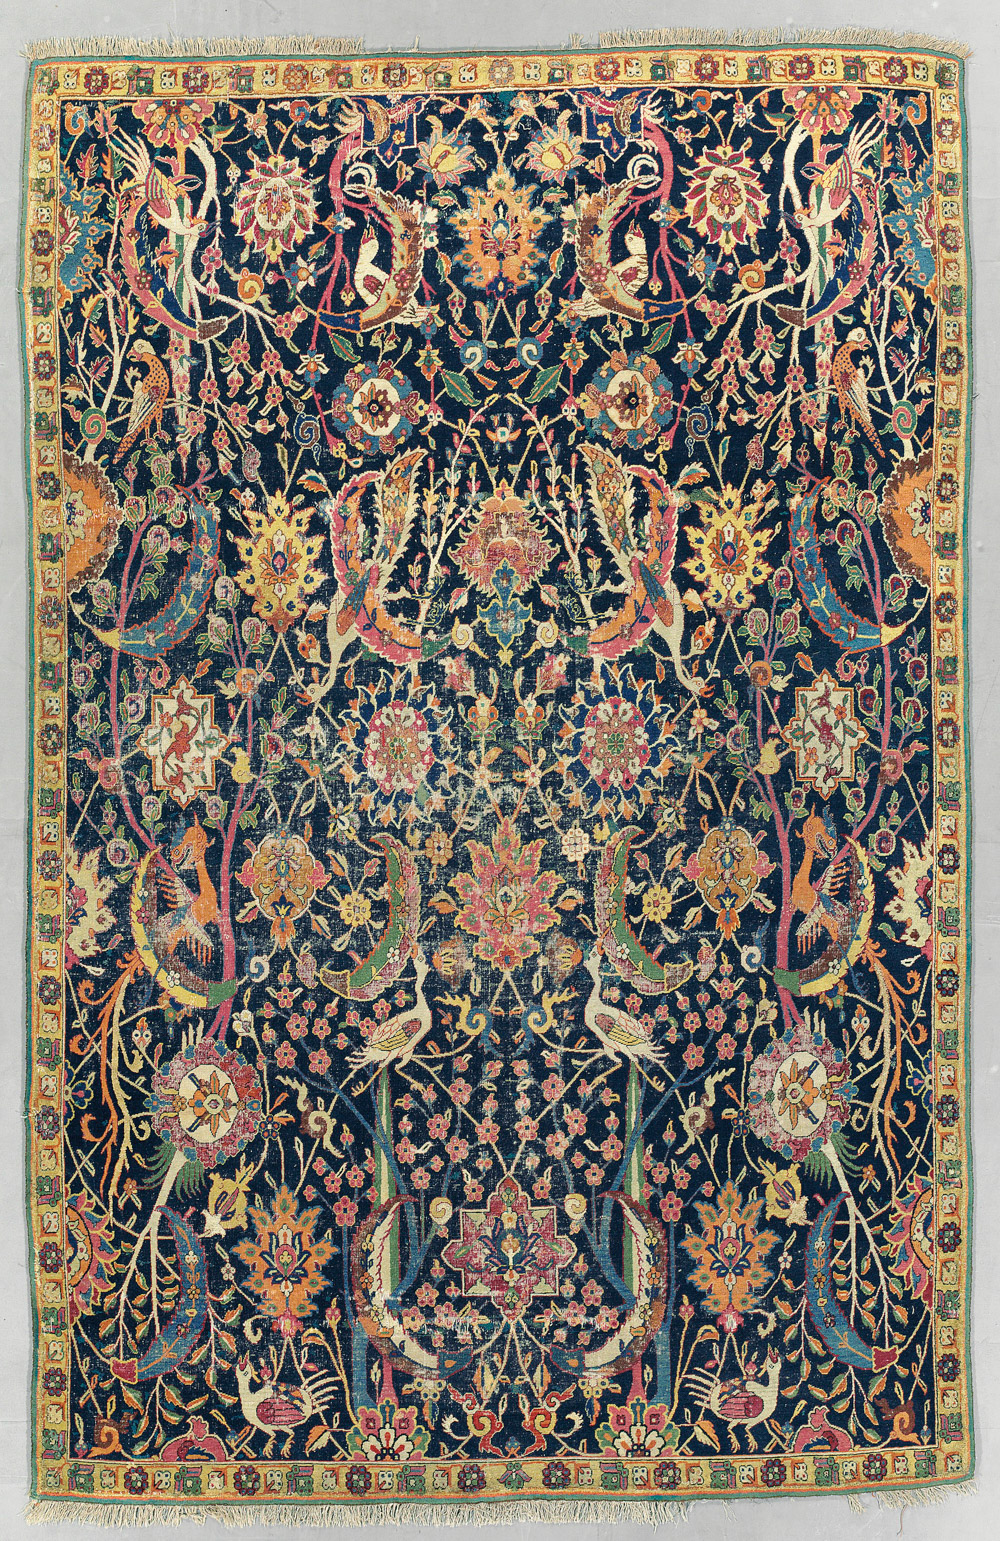 "Kerman 'vase' carpet fragment, southeast Persia, early 17th century. 1.96 x 3.06m (6'5"" x 10'1""). £400,000-600,000"